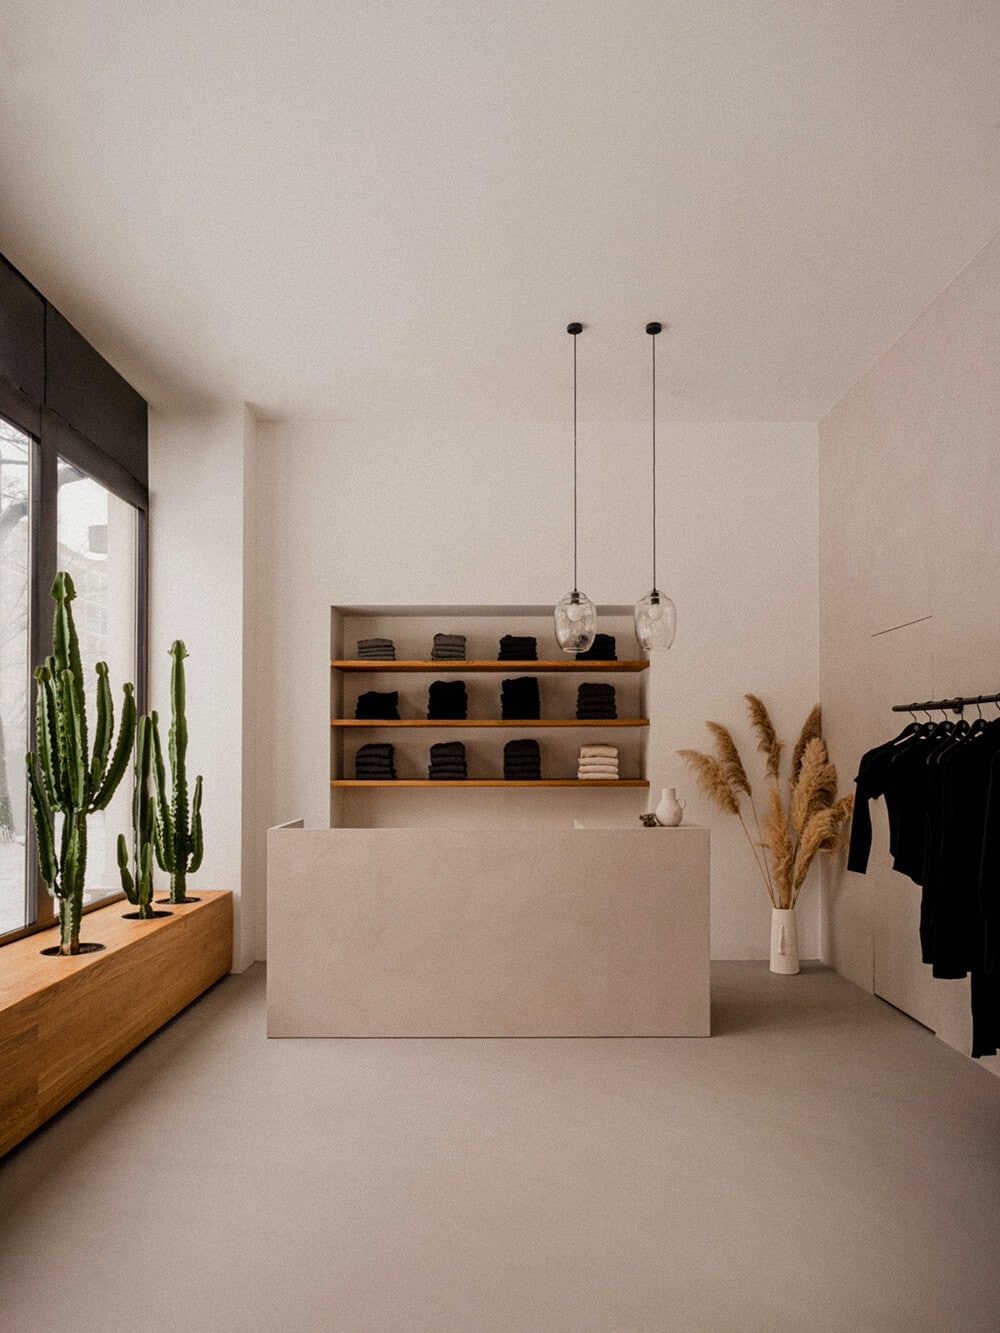 Butik MUUV by Five Cell